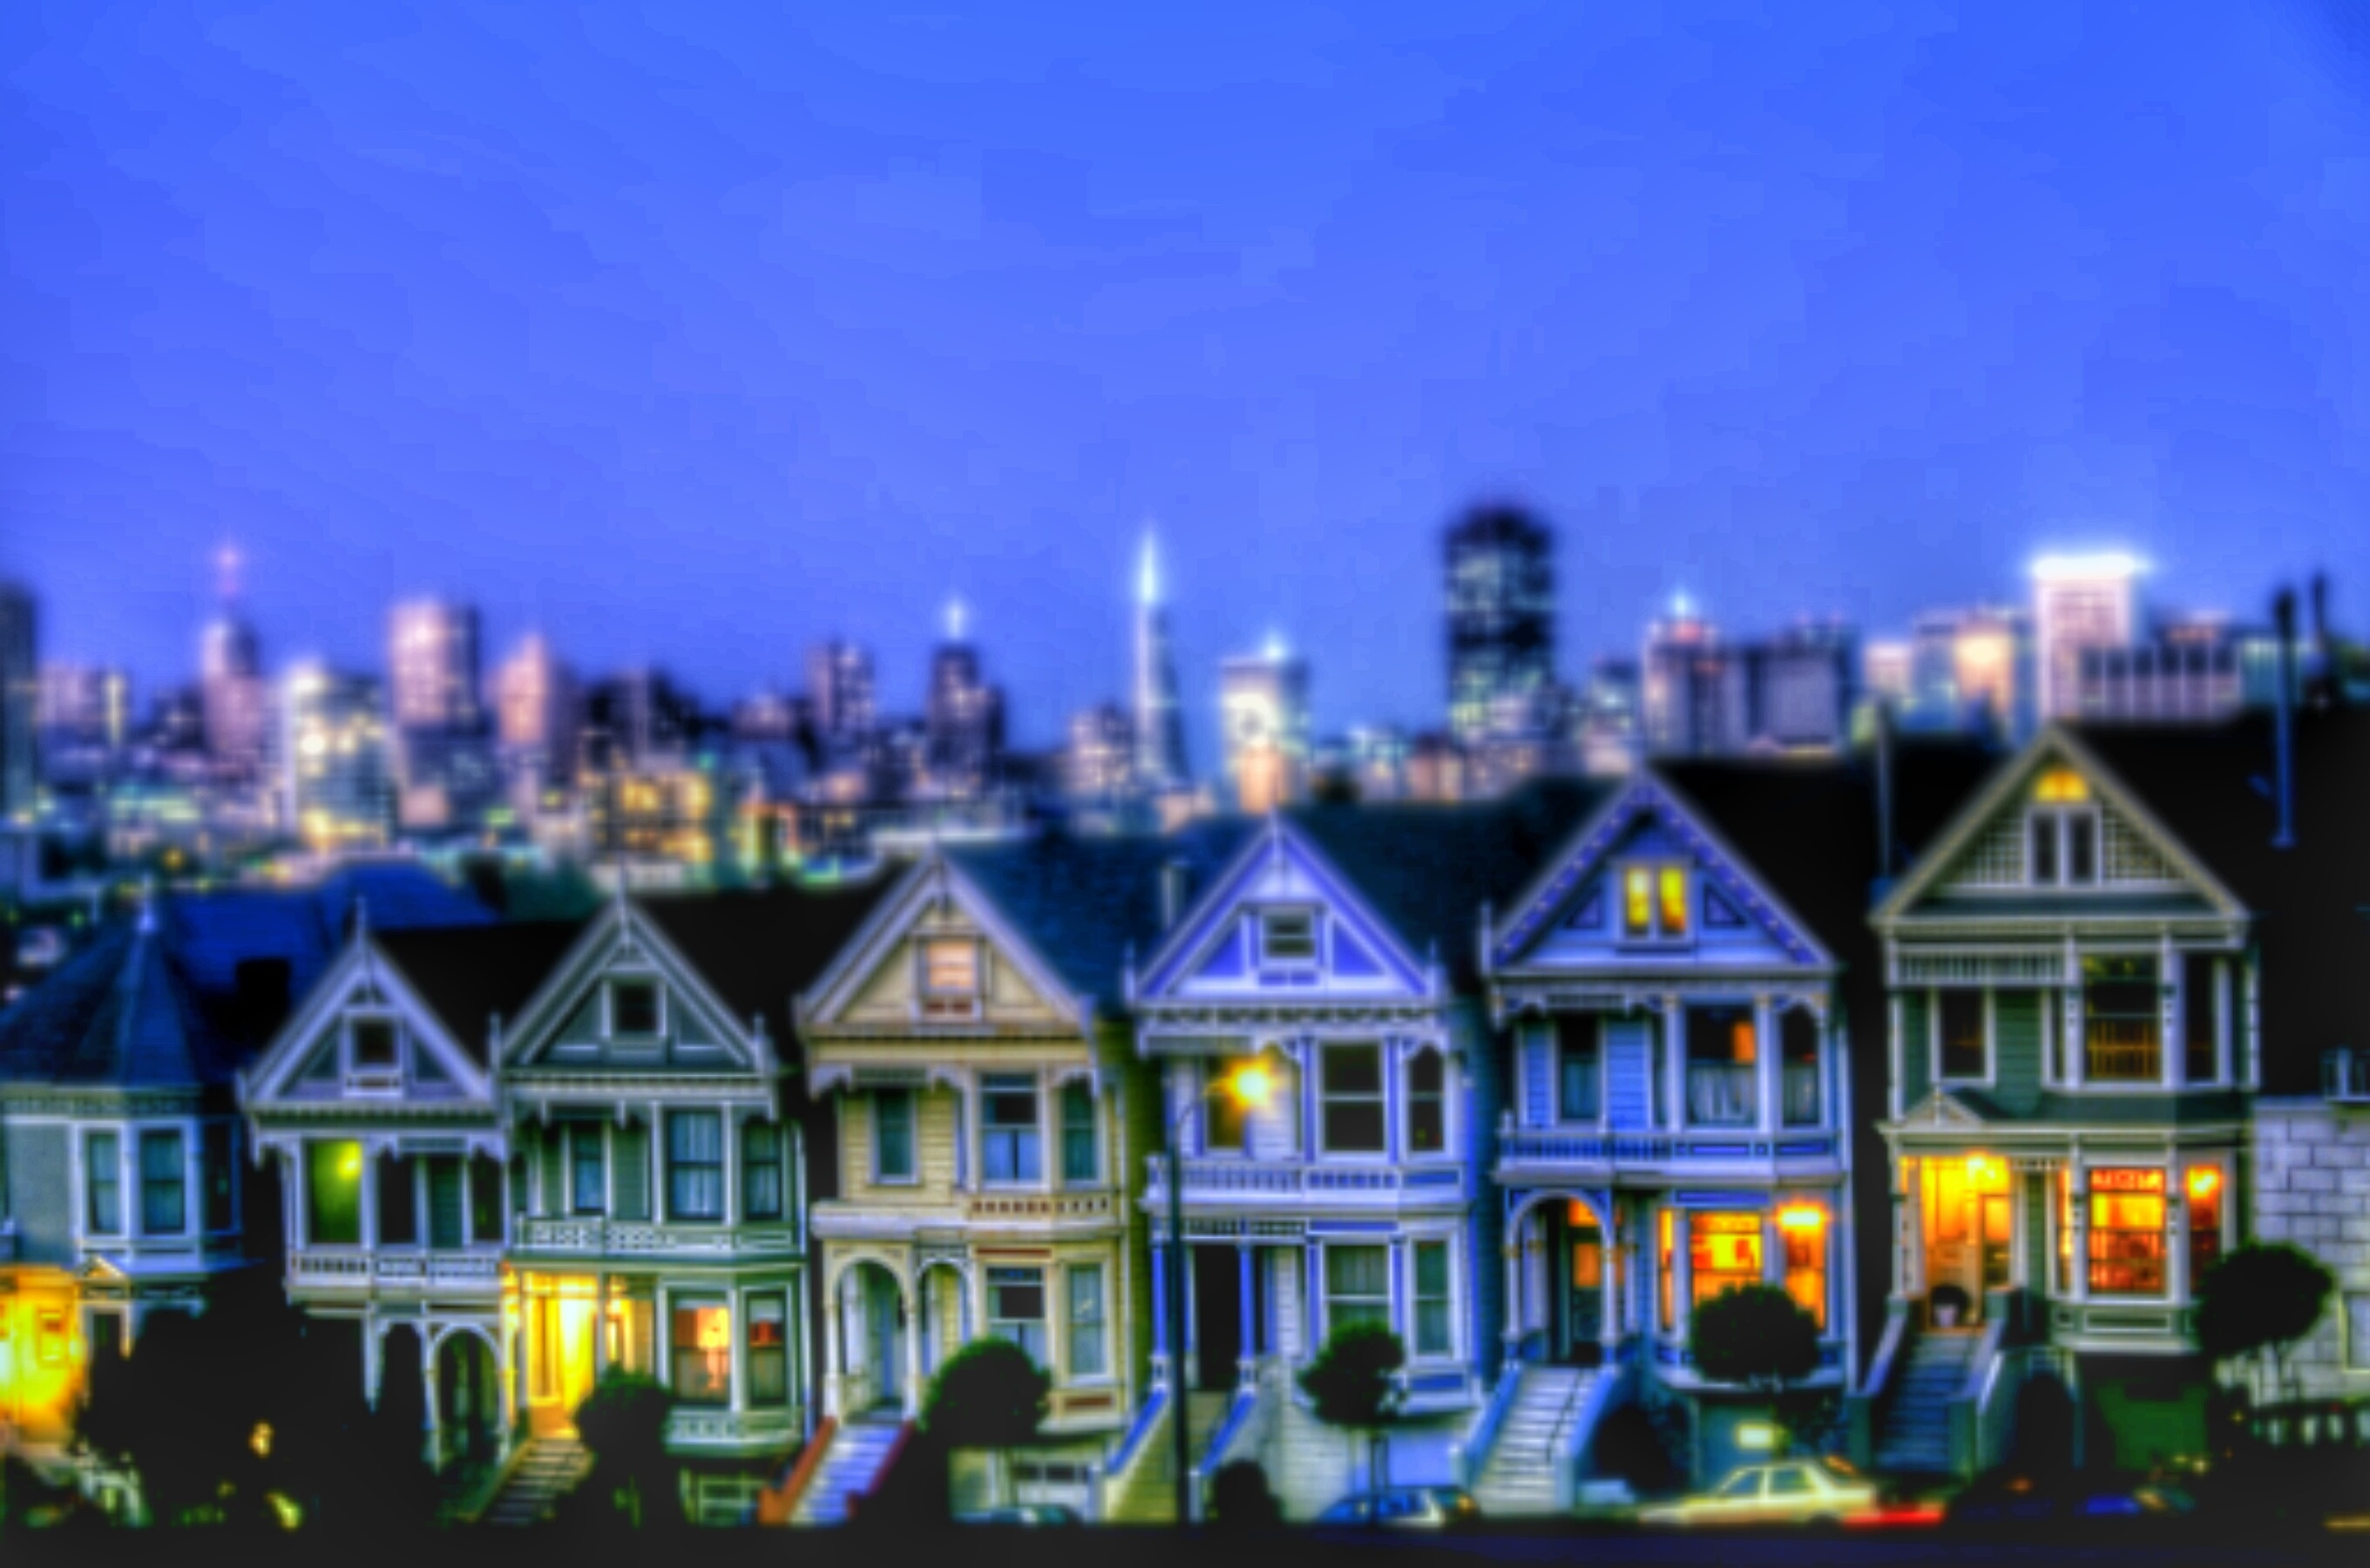 Painted Ladies Houses By Illuminated Urban Skyline Against Sky At Night